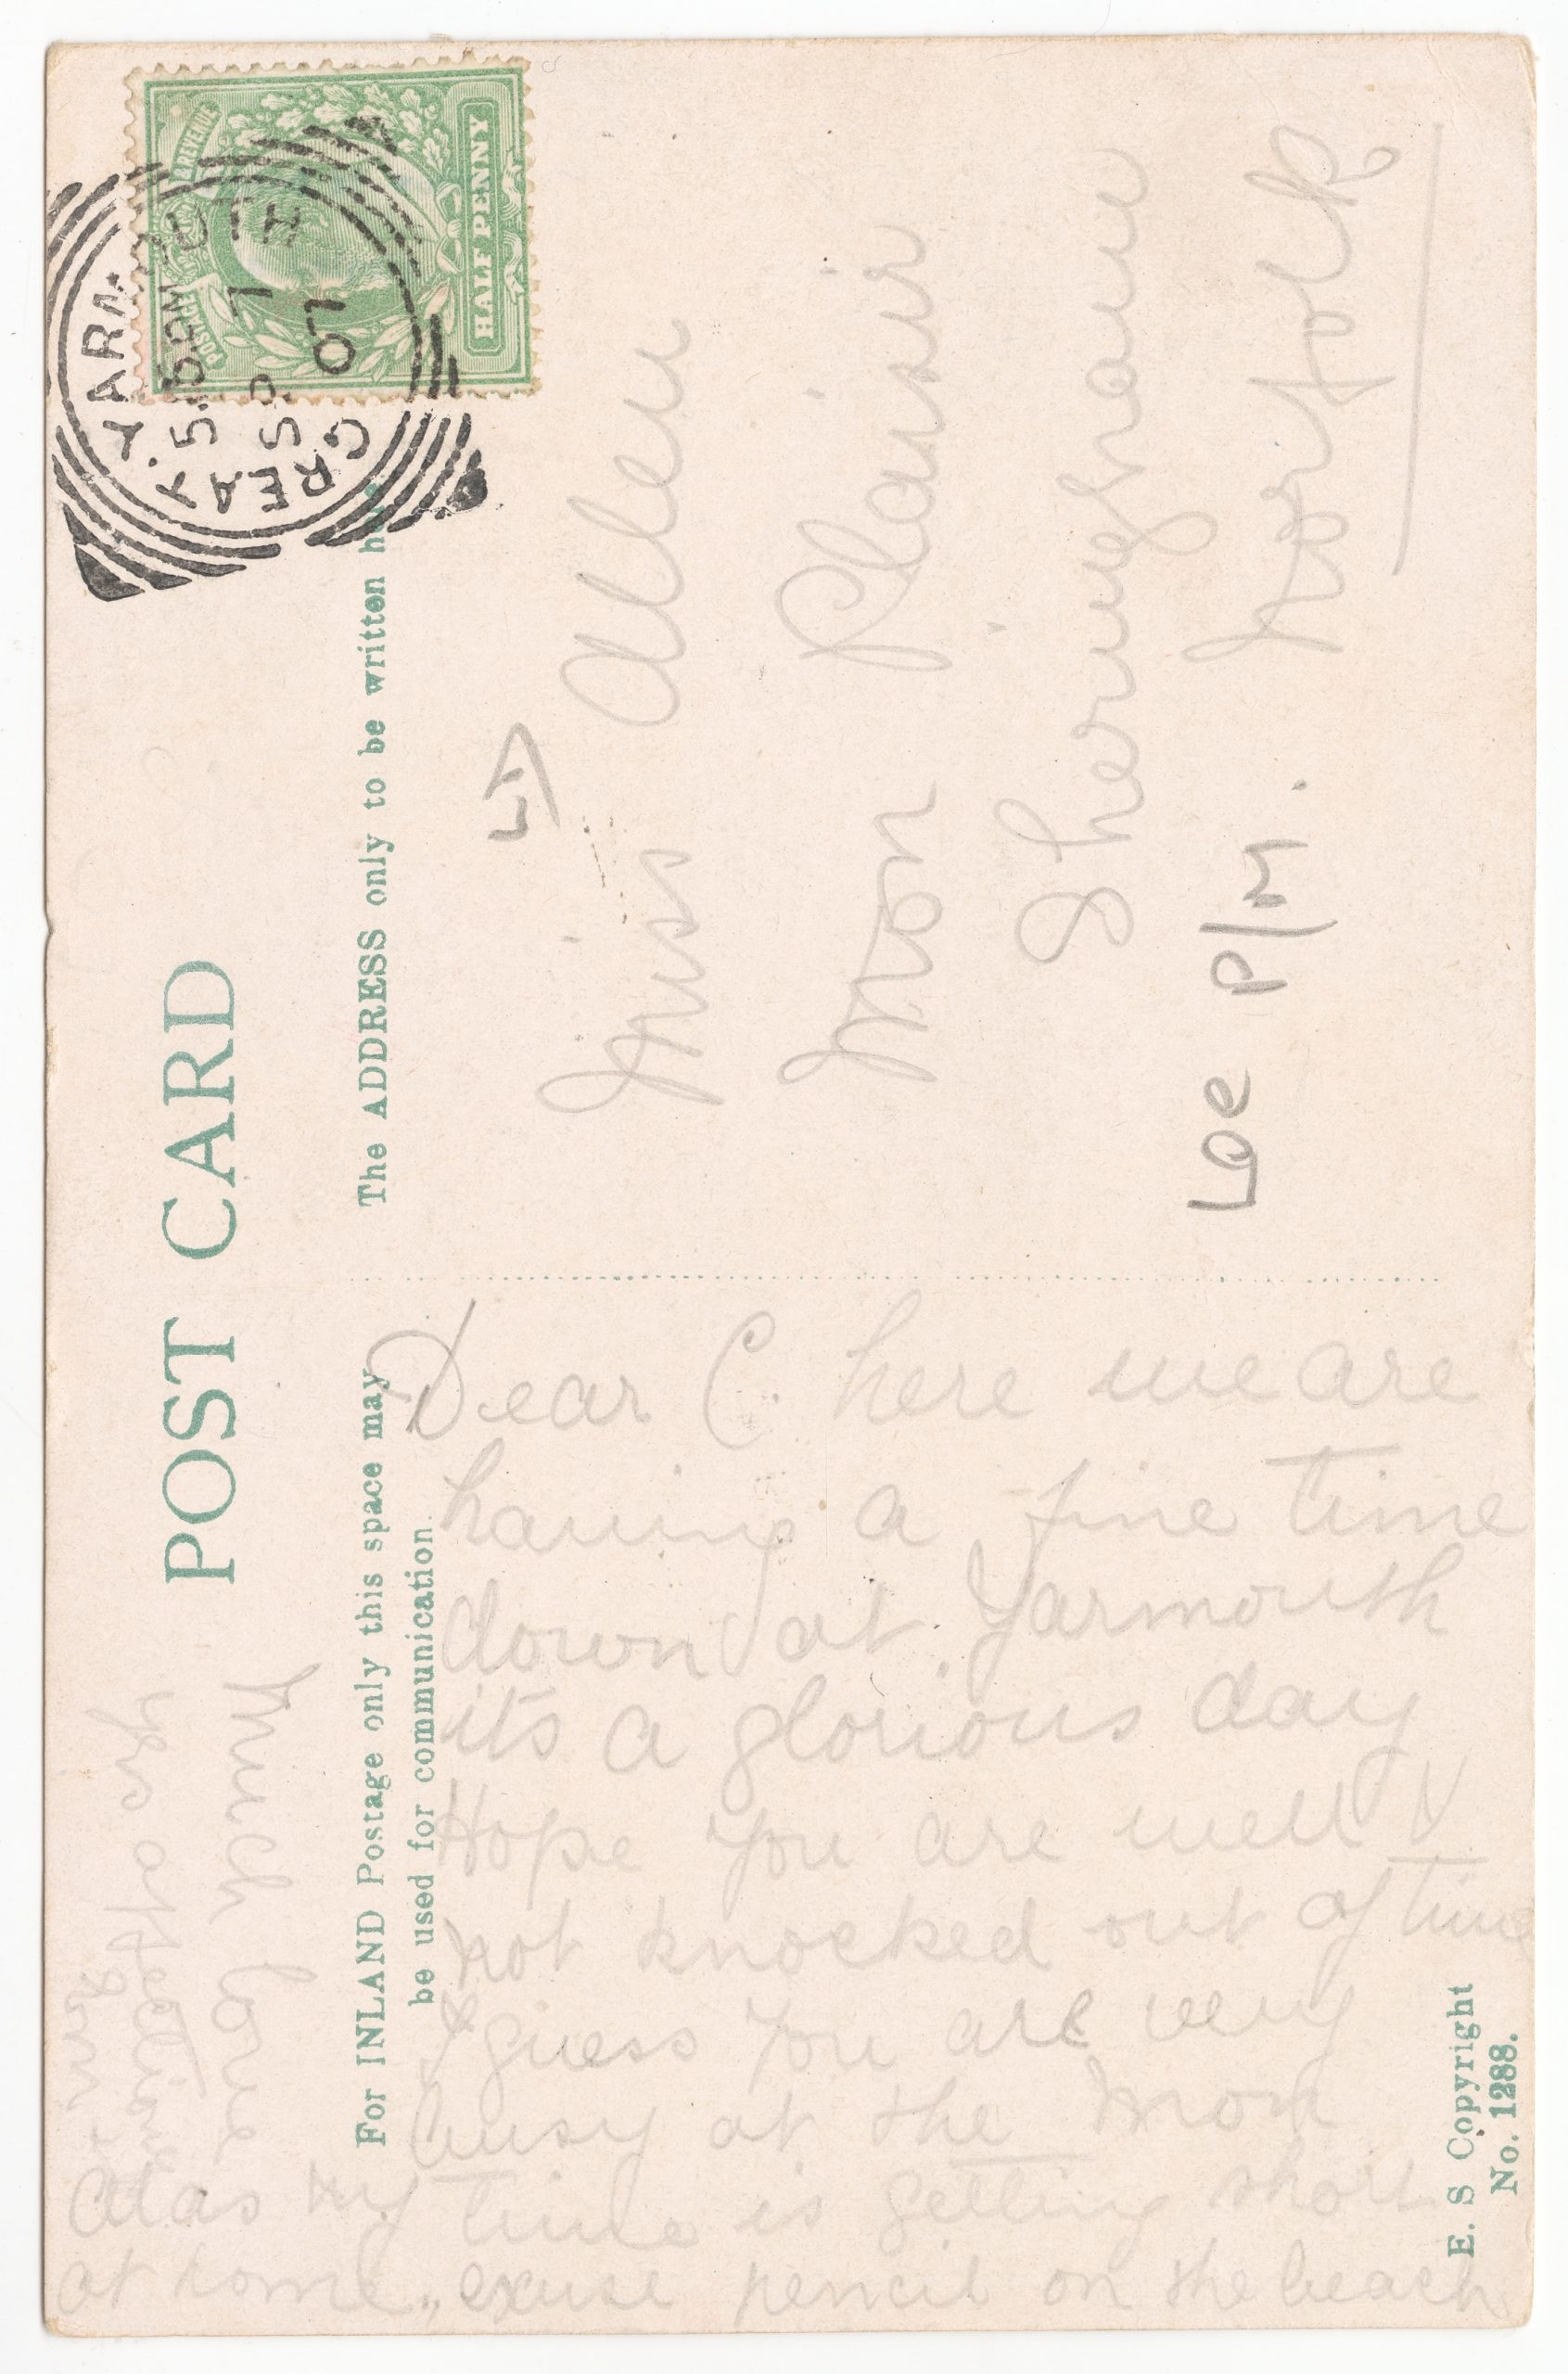 Handwritten postcard message that curves around to find more space for the text.